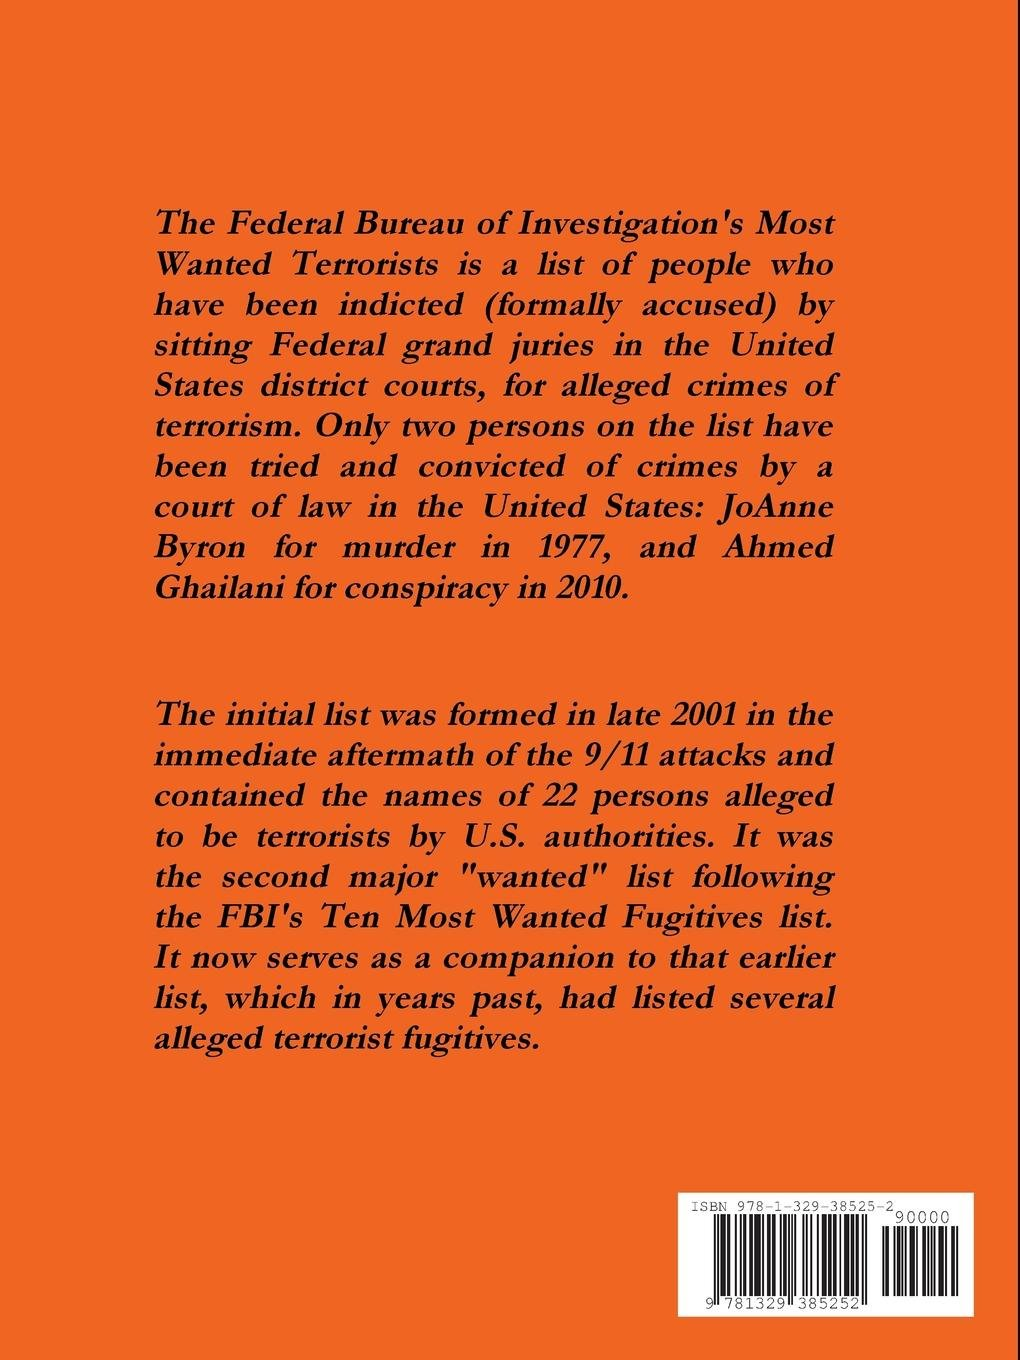 Buy Fbi's Most Wanted Terrorists Book Online at Low Prices